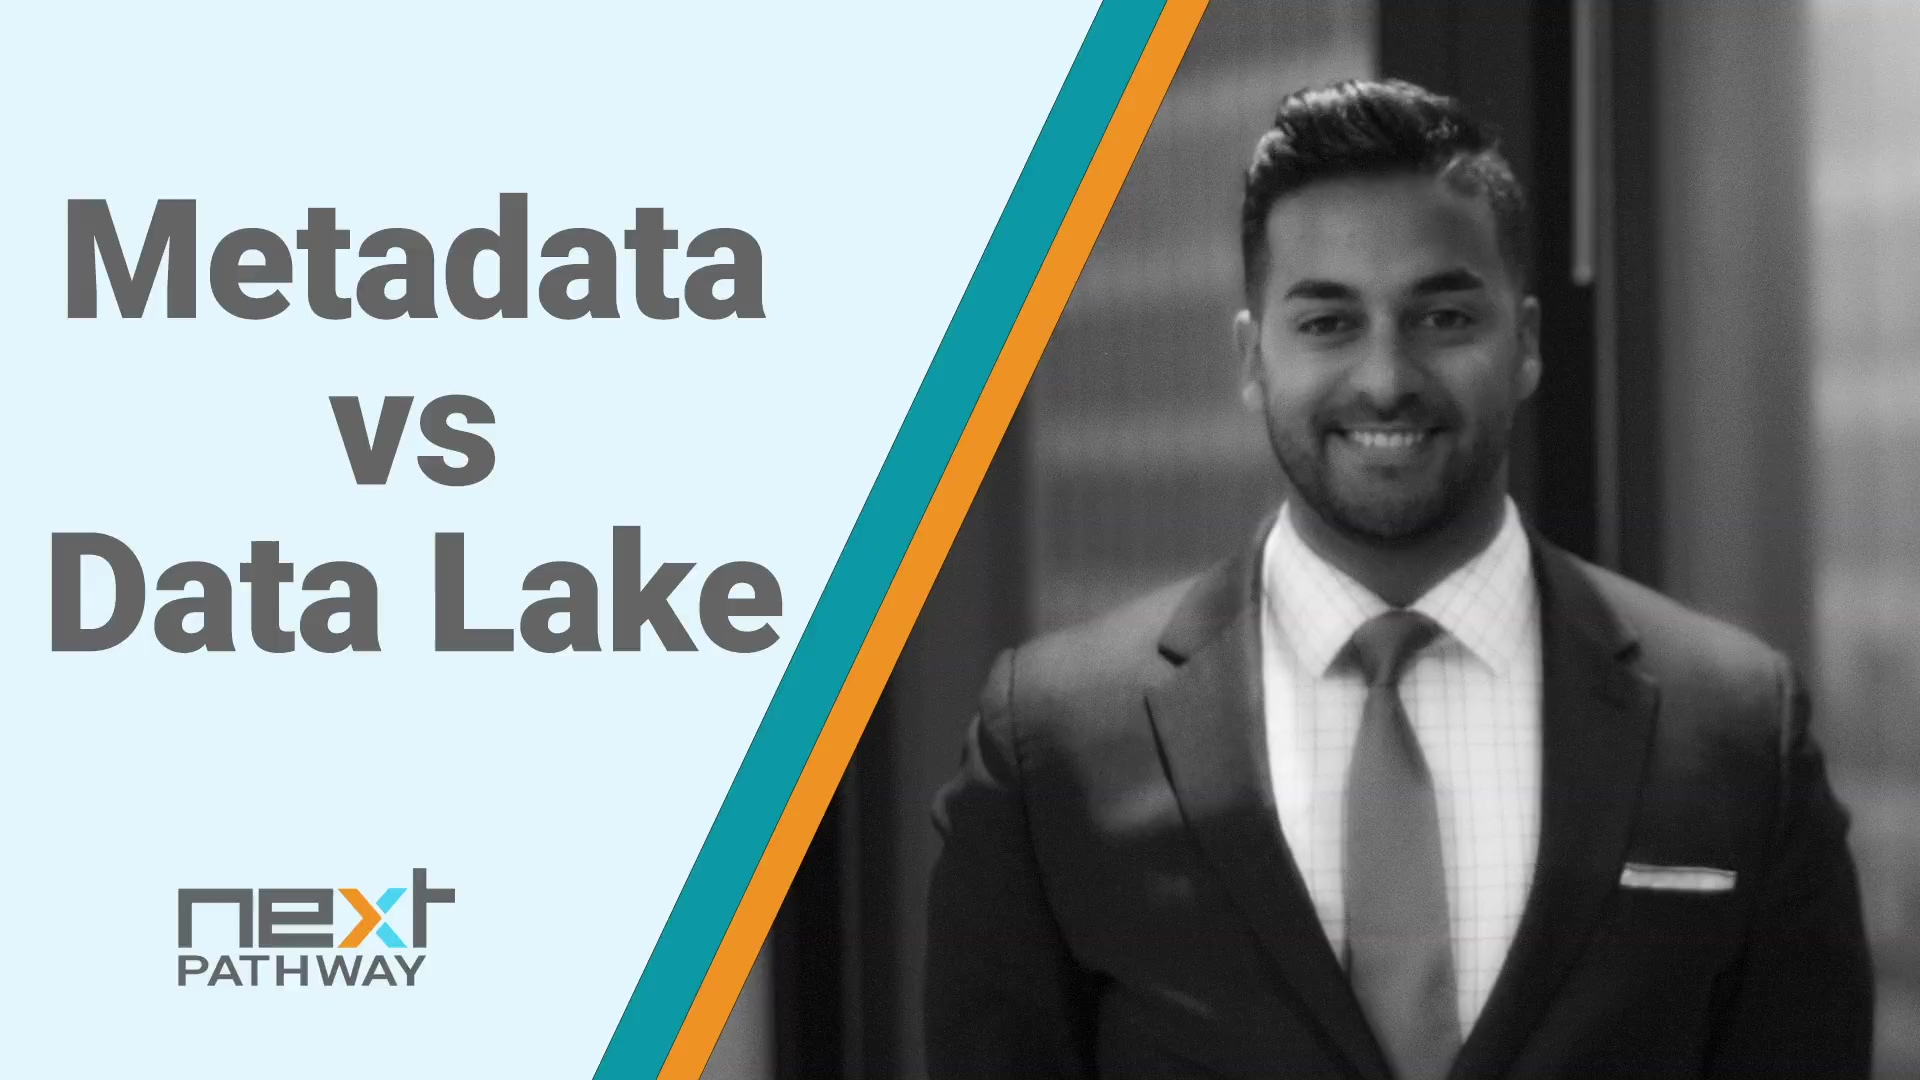 QNA_Vinay_ Why is Metadata so important on the context of Data Lake